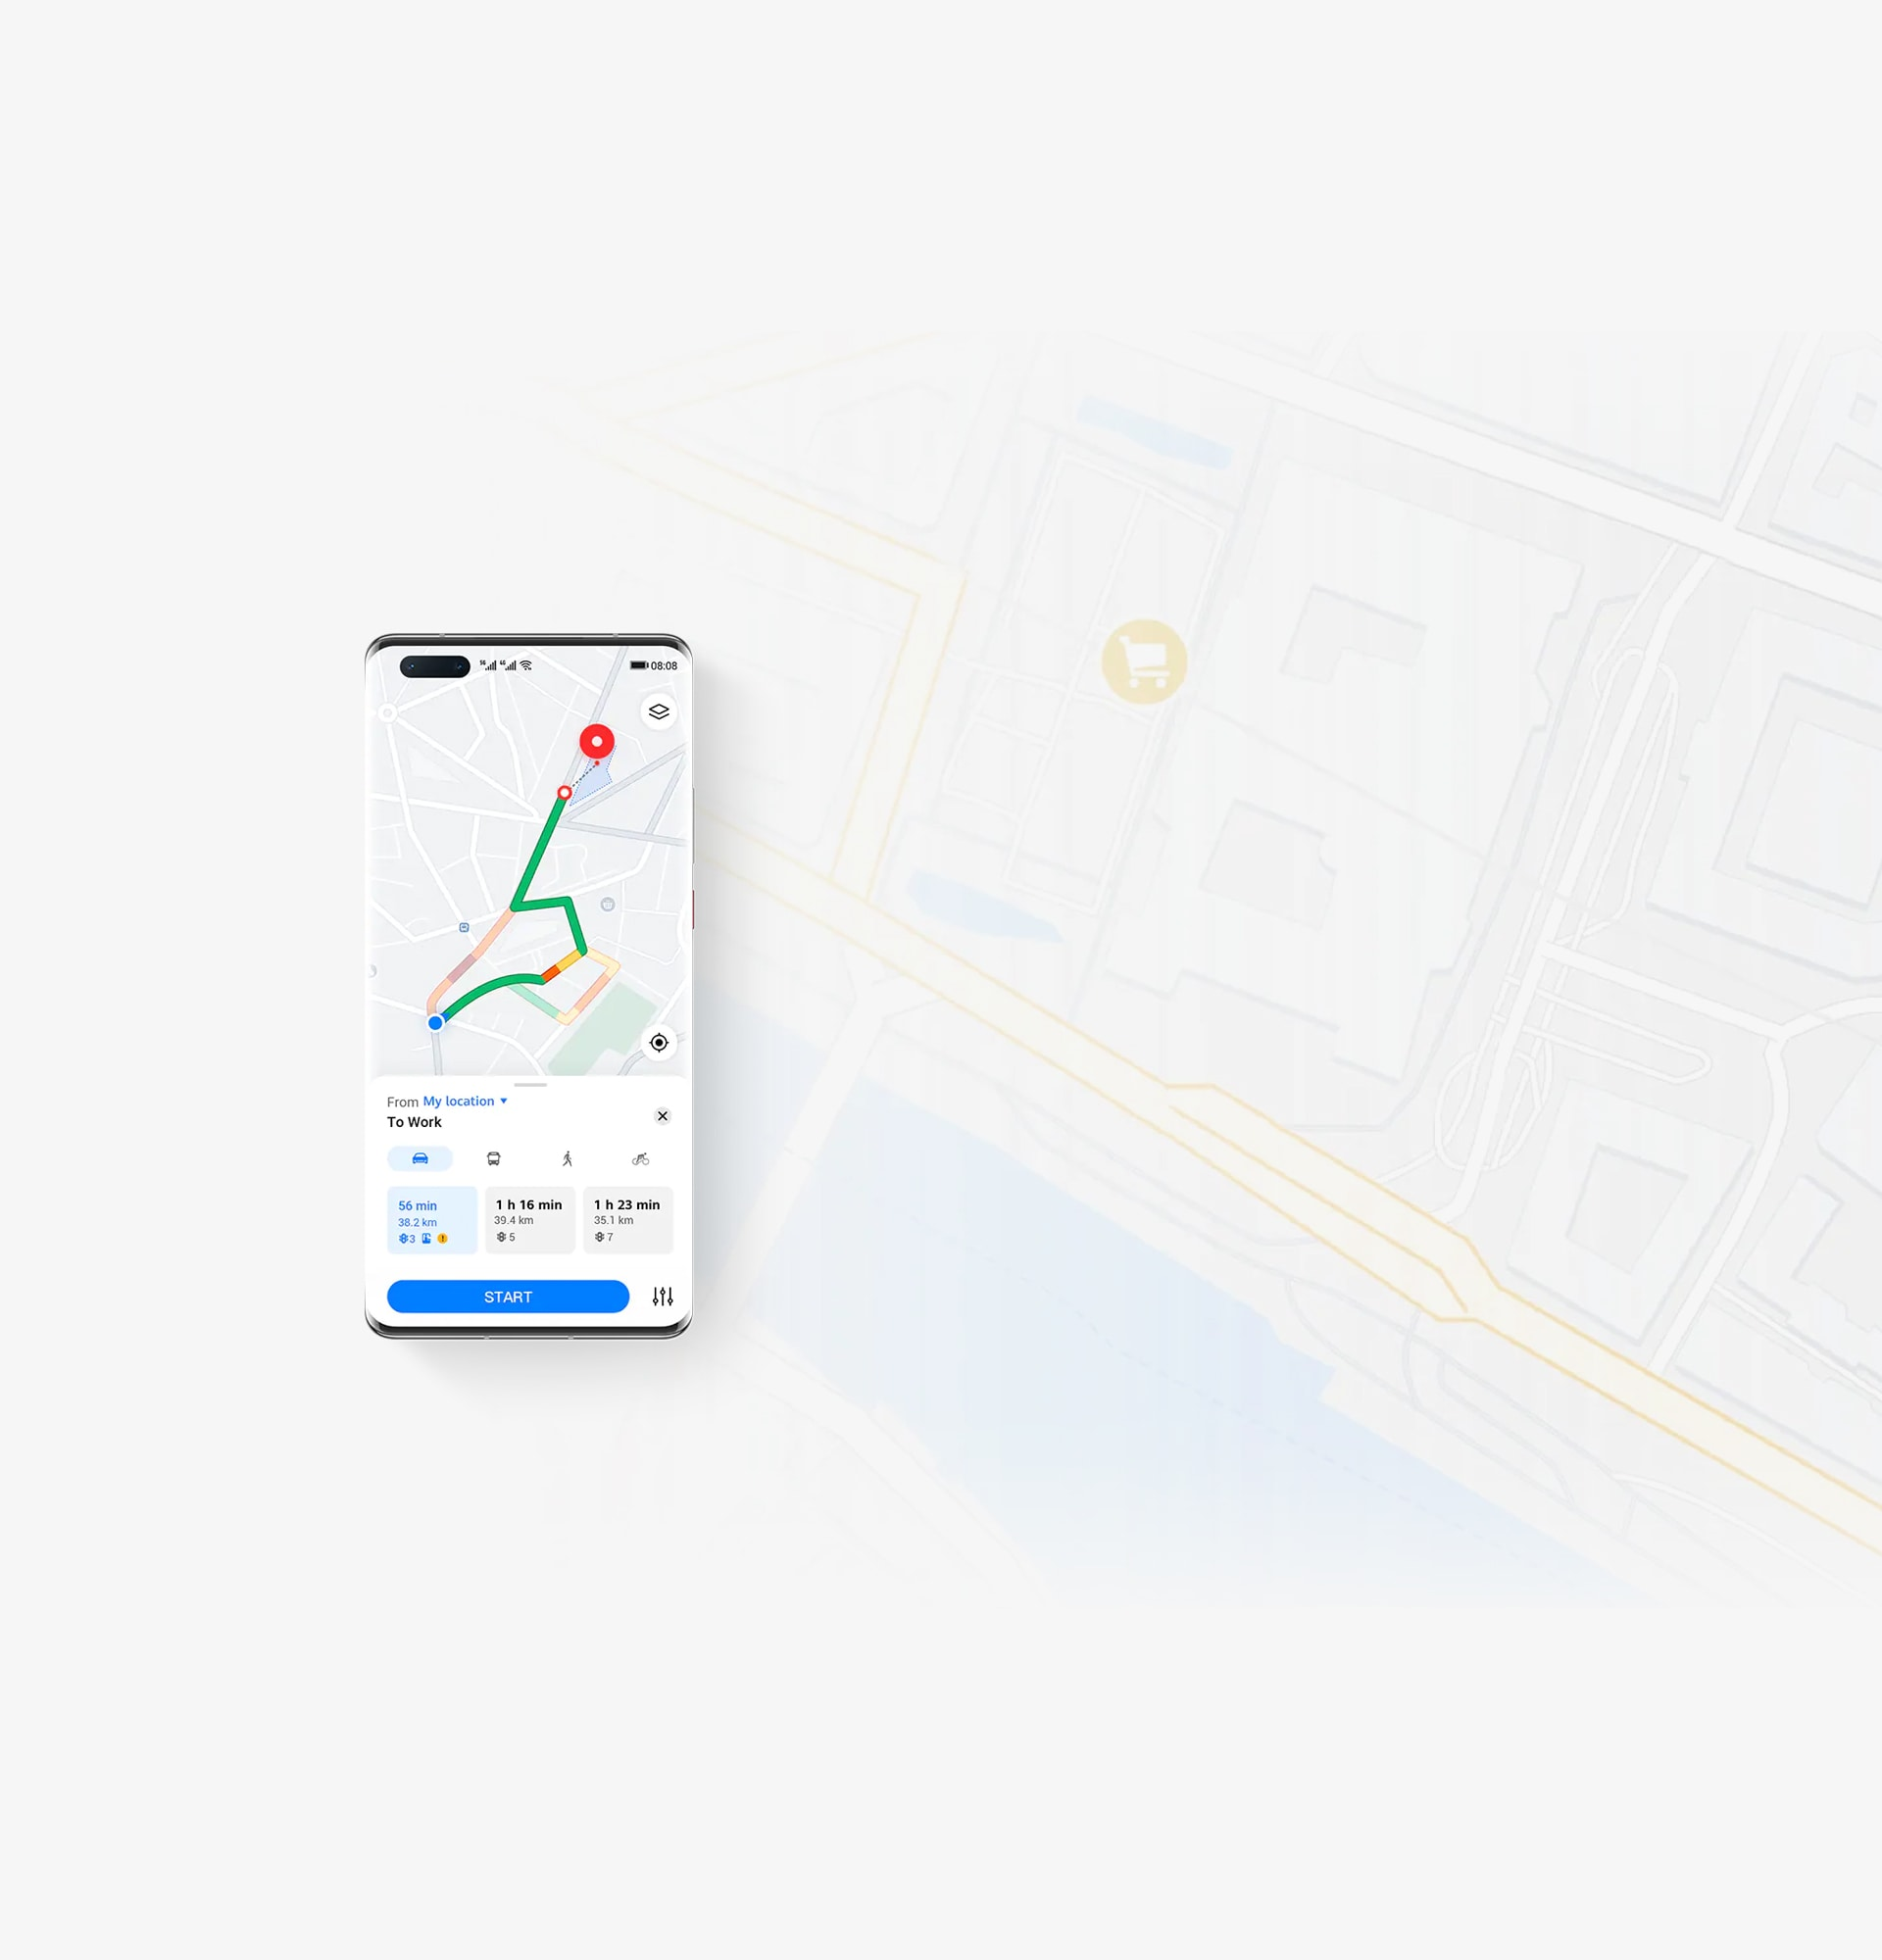 TomTom maps and traffic data open up a new world for millions of HUAWEI users and developers